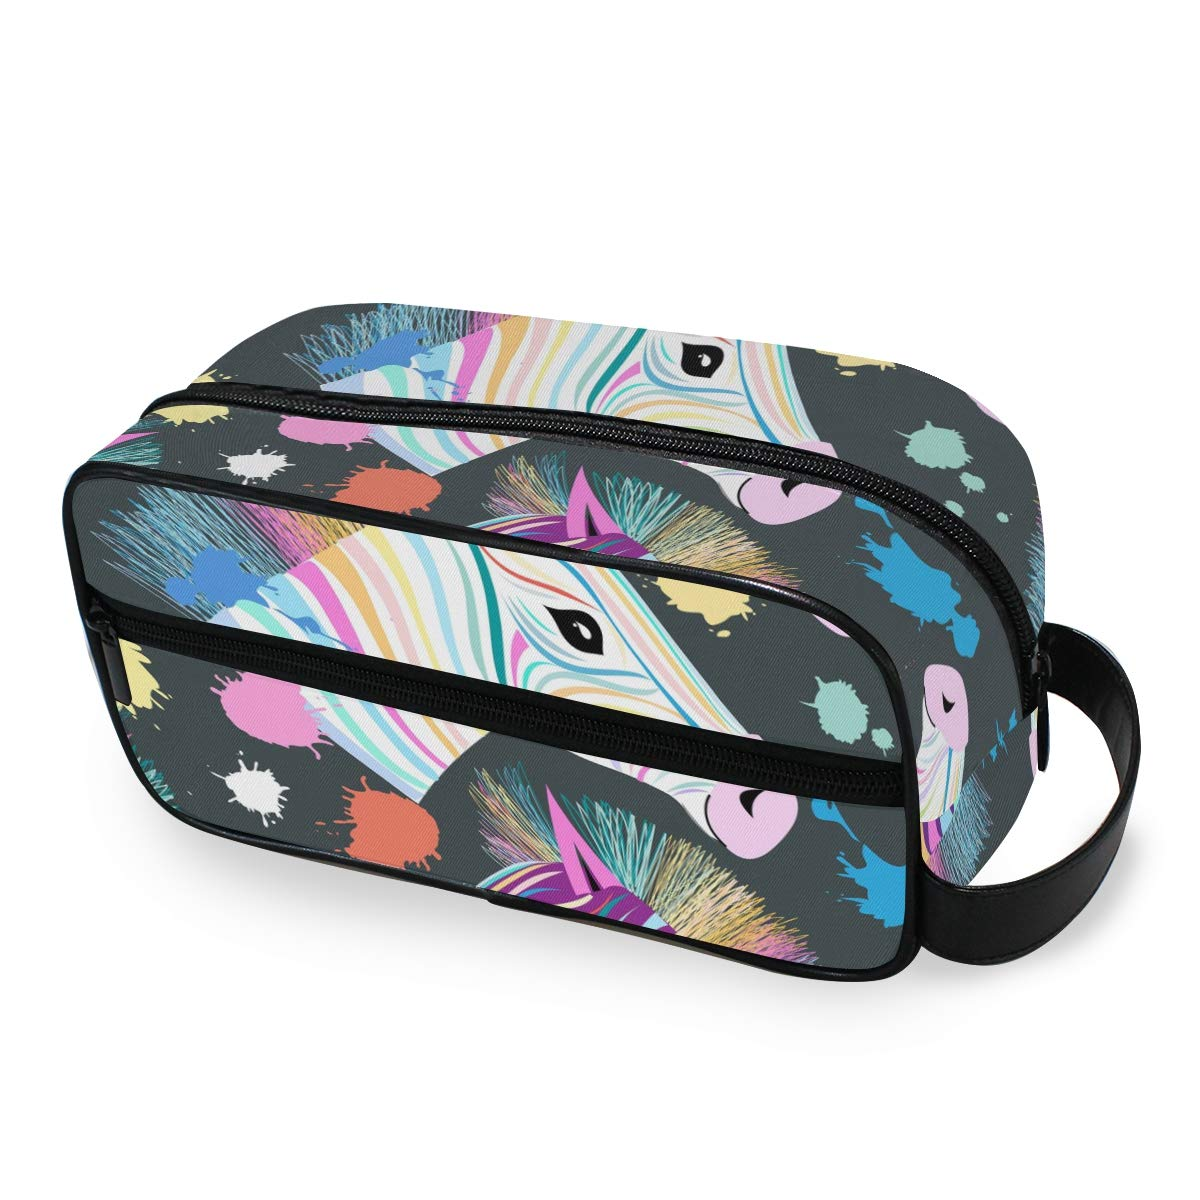 Cosmetic Bag Makeup Case Portable Toiletry Bag Zebra Pattern Organizer Accessories Case Tools Case for Trave